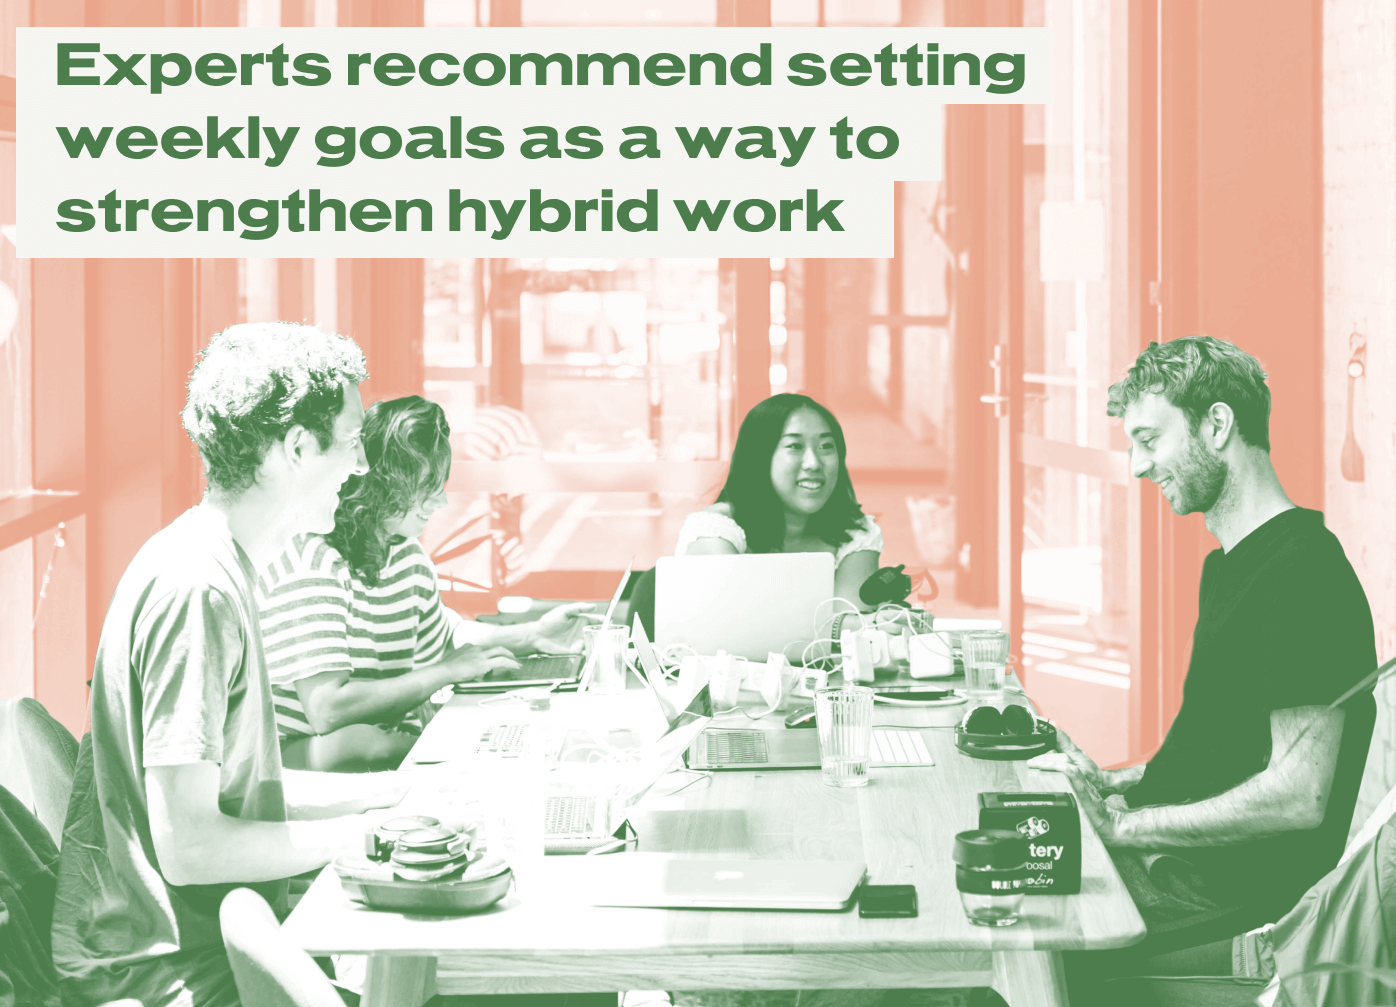 Experts recommend setting weekly goals as a way to strengthen hybrid work.